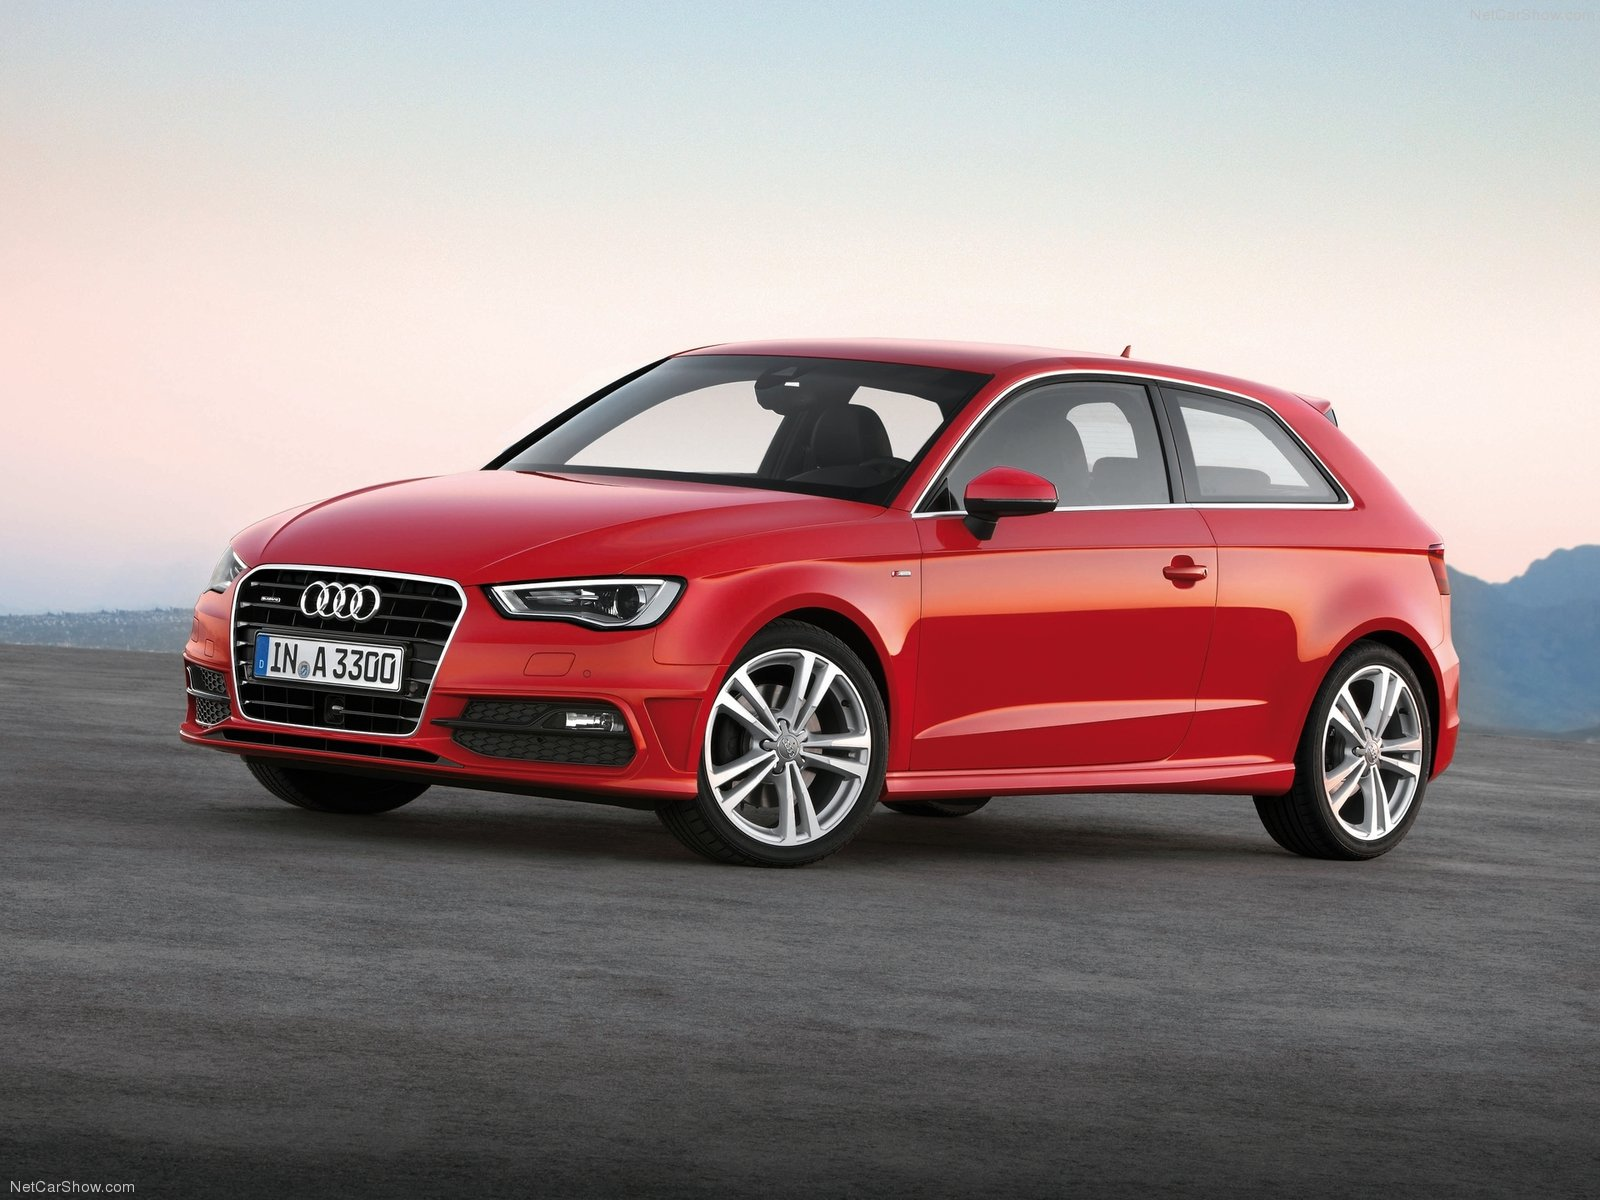 My perfect Audi A3  3DTuning - probably the best car configurator!